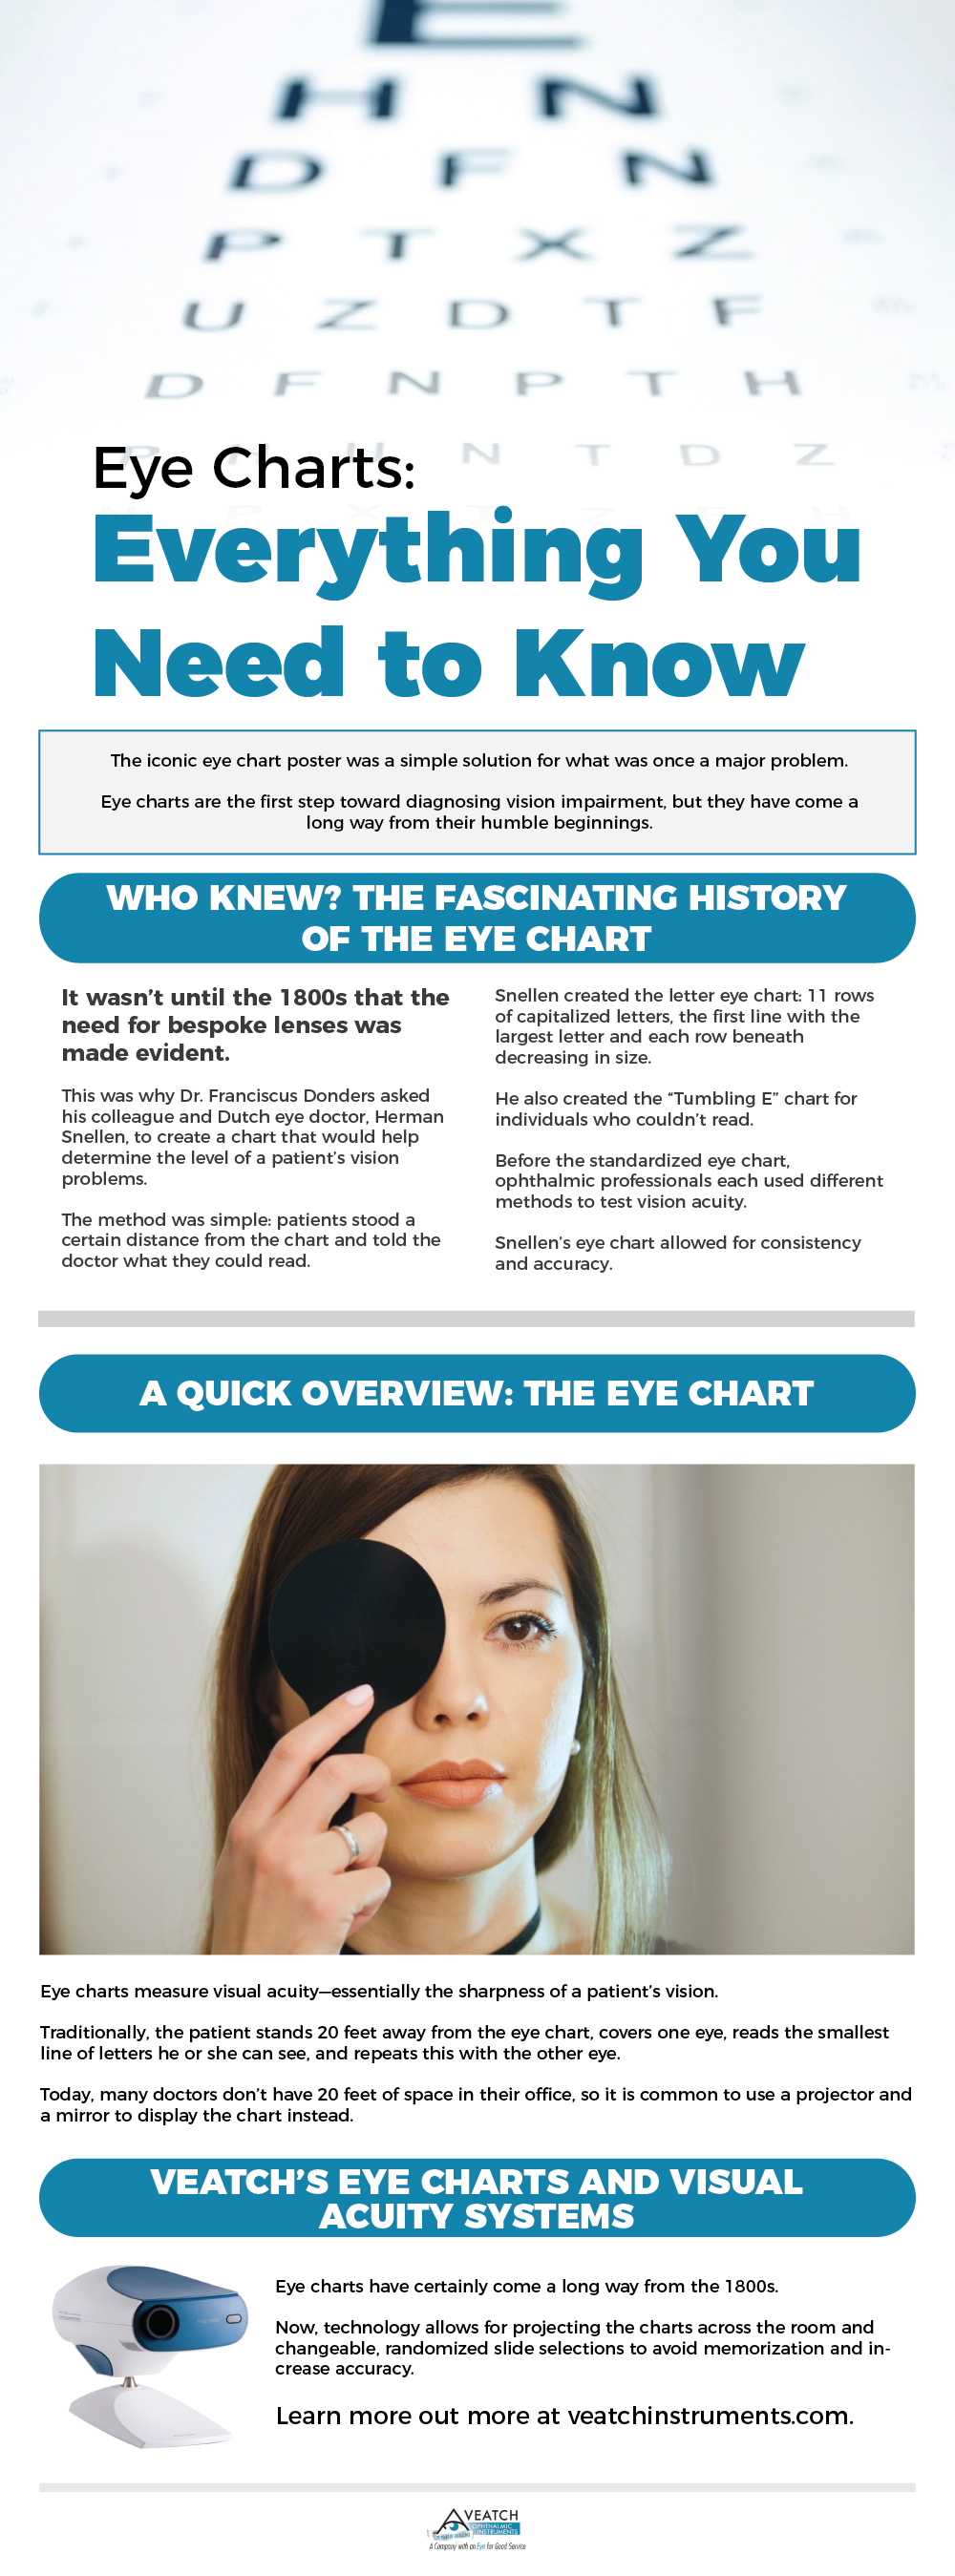 Eye charts view veatchs entire visual acuity inventory here nvjuhfo Image collections